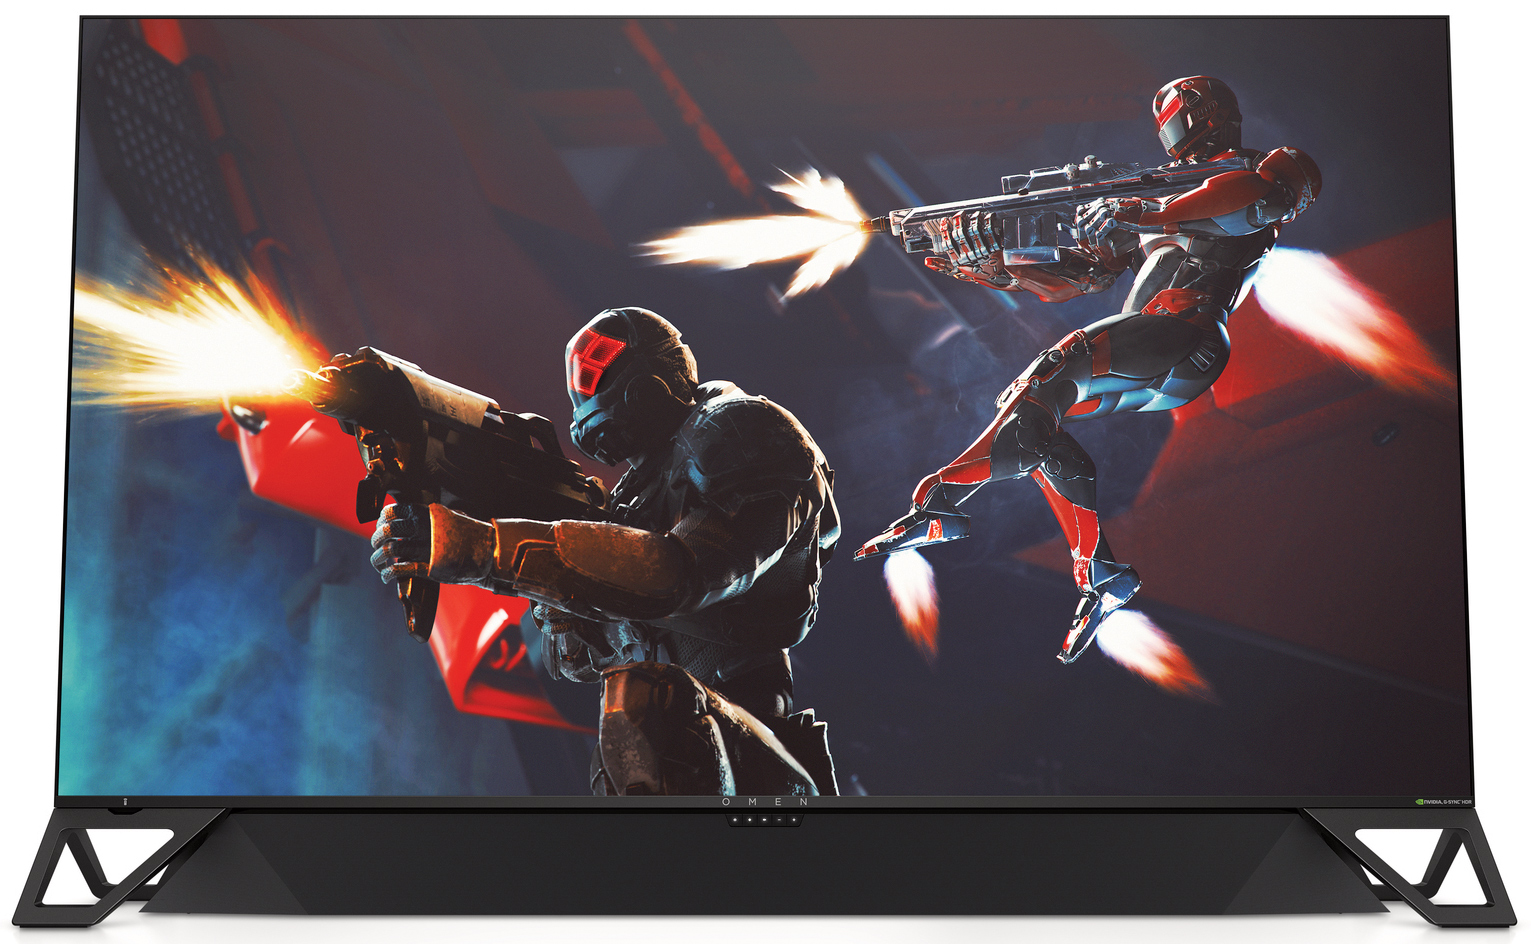 HP at CES 2019: OMEN X Emperium 65-Inch 144Hz G-Sync HDR